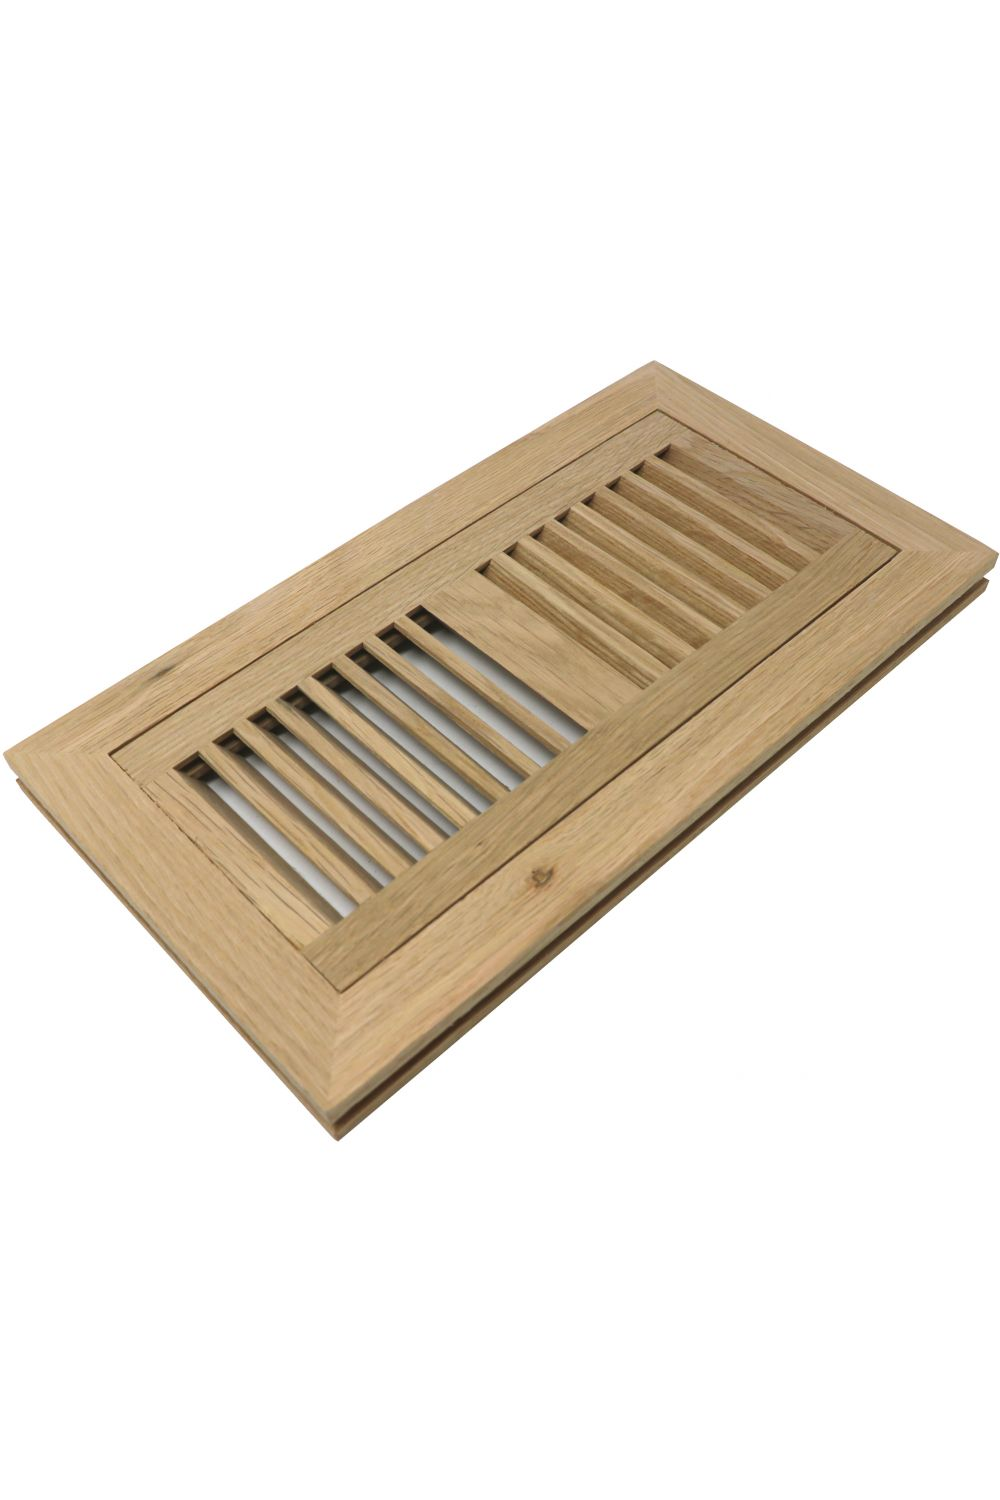 "White Oak 4"" x 10"" Wood Vent - Flush Mount w Damper"